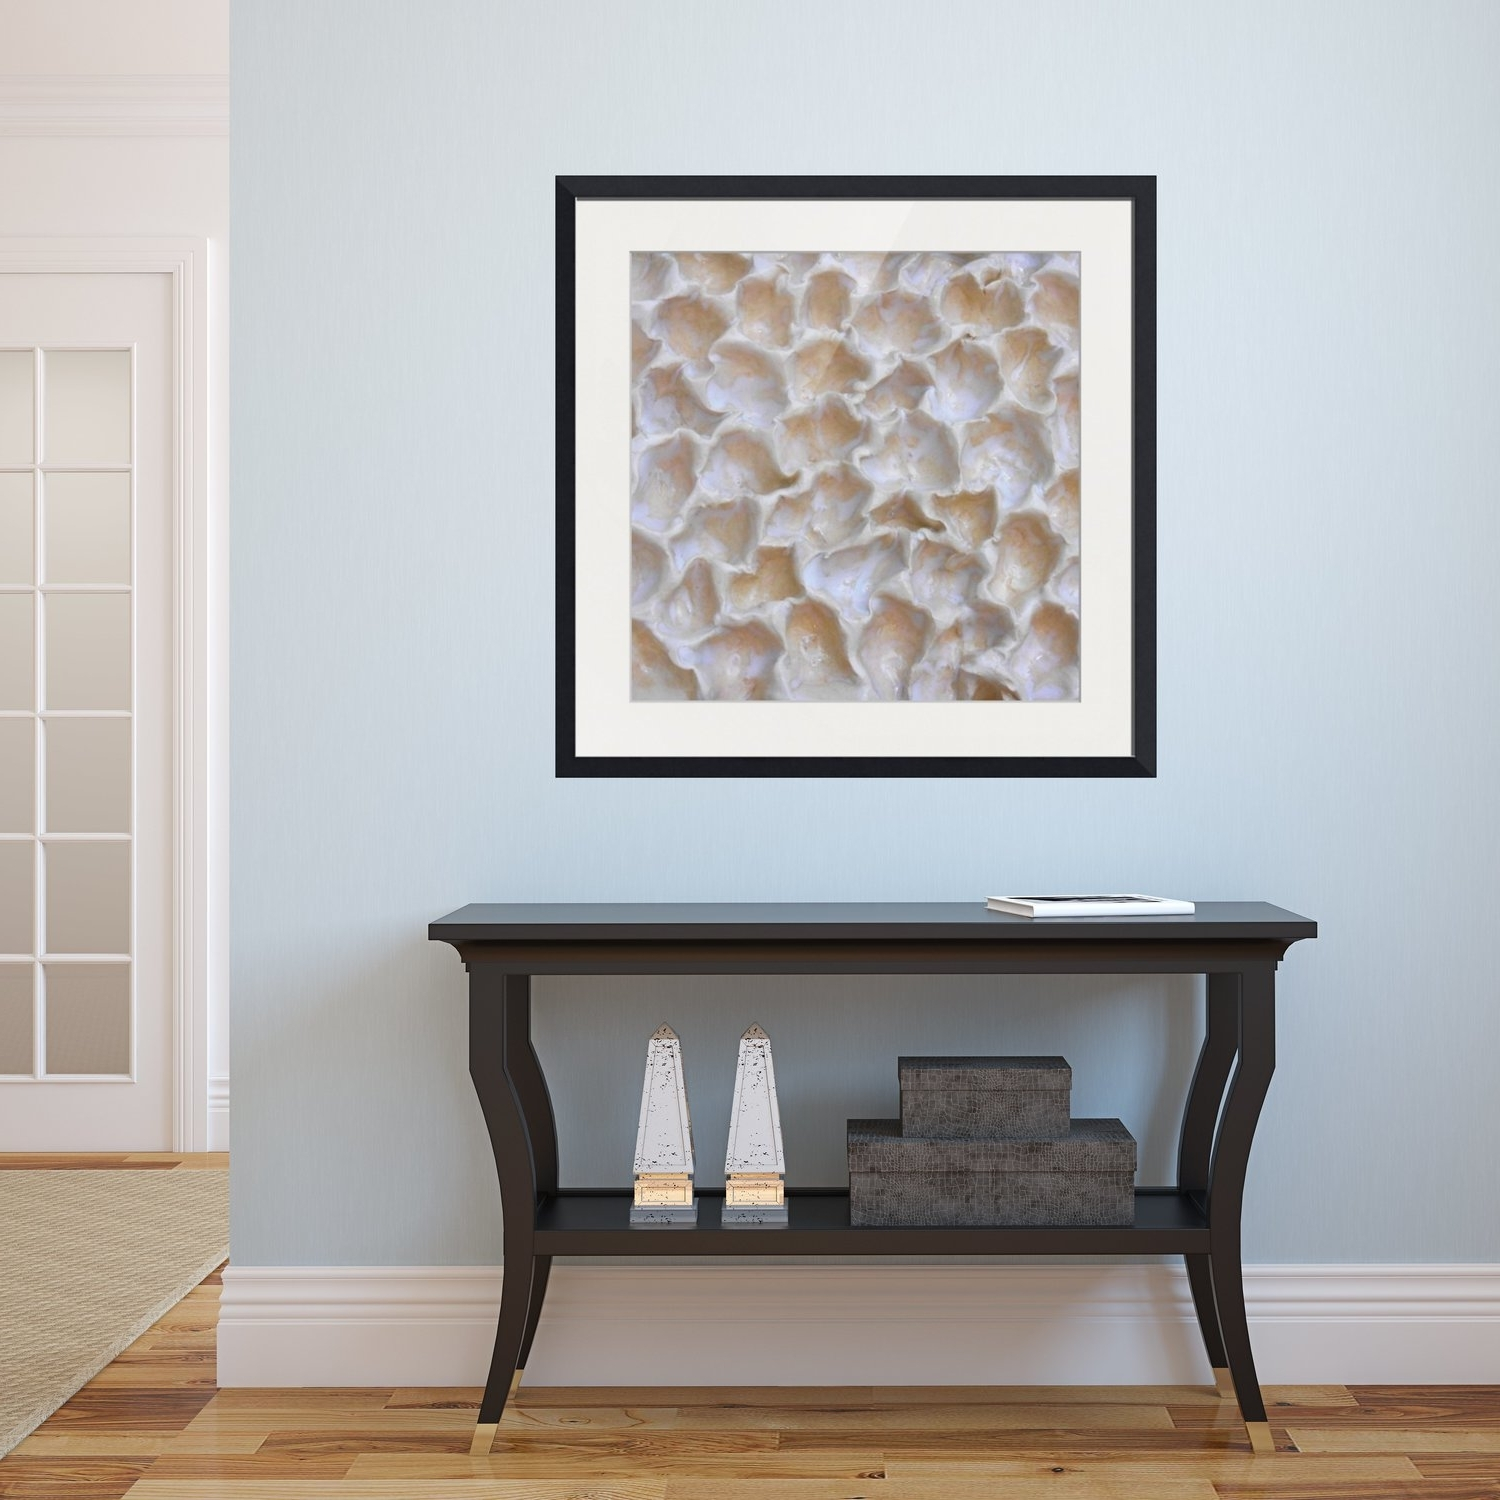 Abstract Canvas, Modern Intended For Most Recently Released Contemporary Framed Art Prints (View 1 of 15)